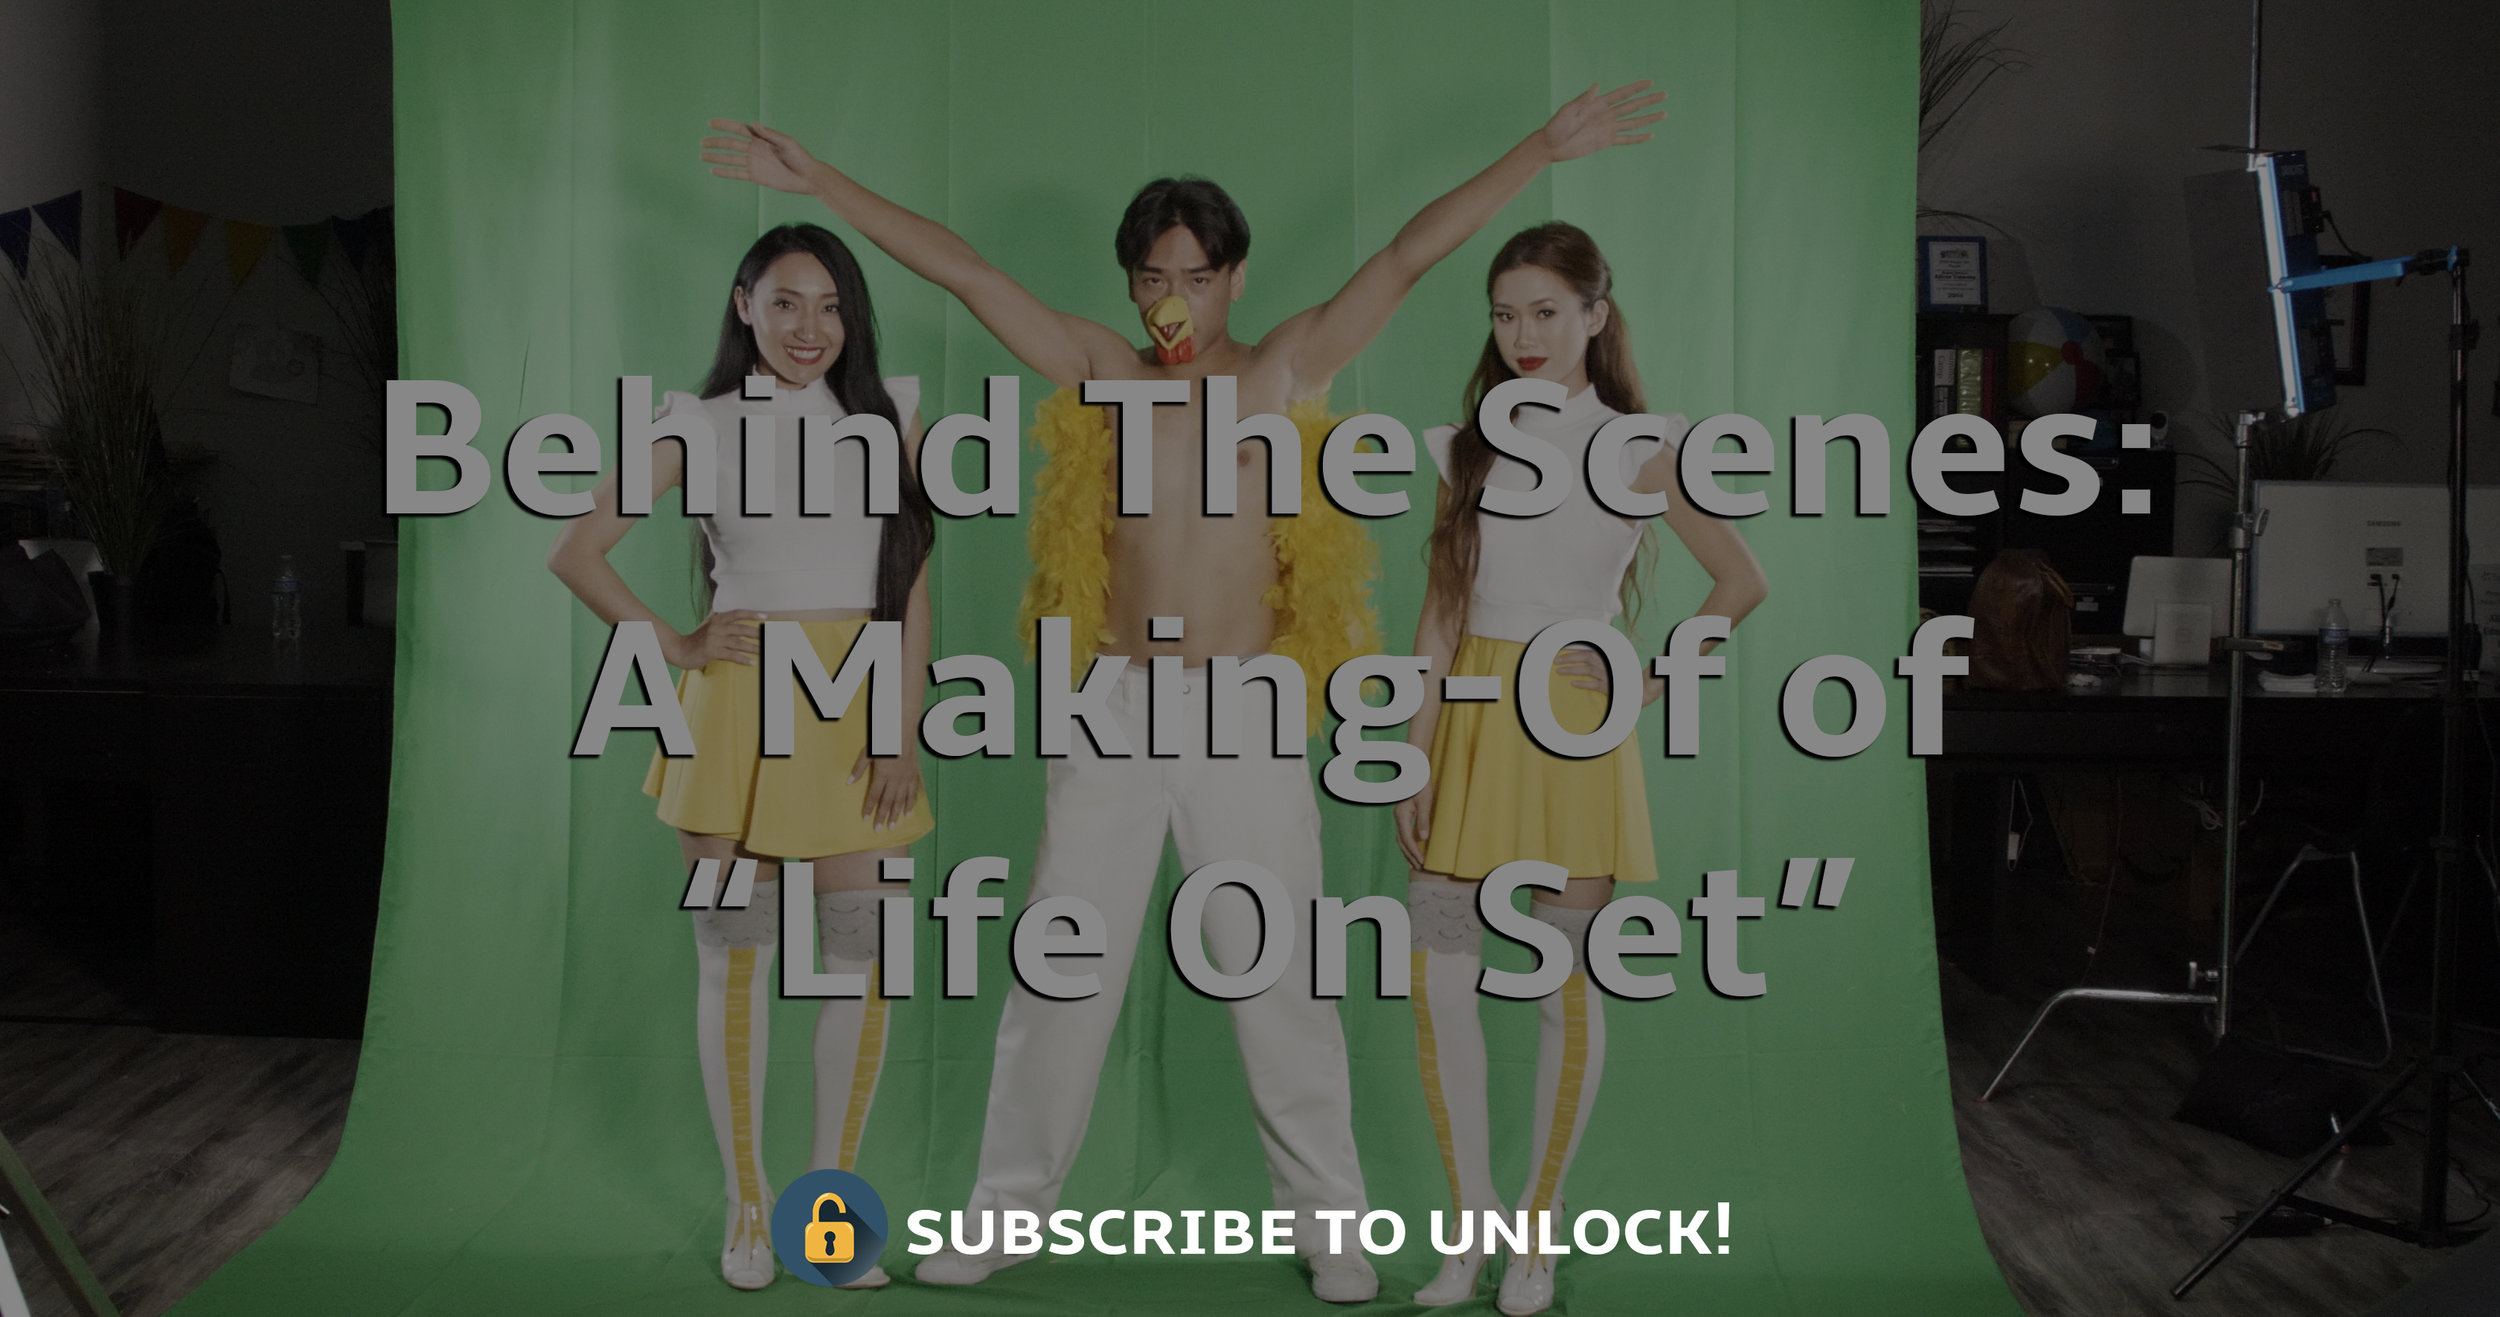 Behind The Scenes: - Watch the hilariously shot making-of of Life On Set with EXCLUSIVE INTERVIEWS with the Director and Cast and everything in between. (hint: Our producer might be a Russian Spy)